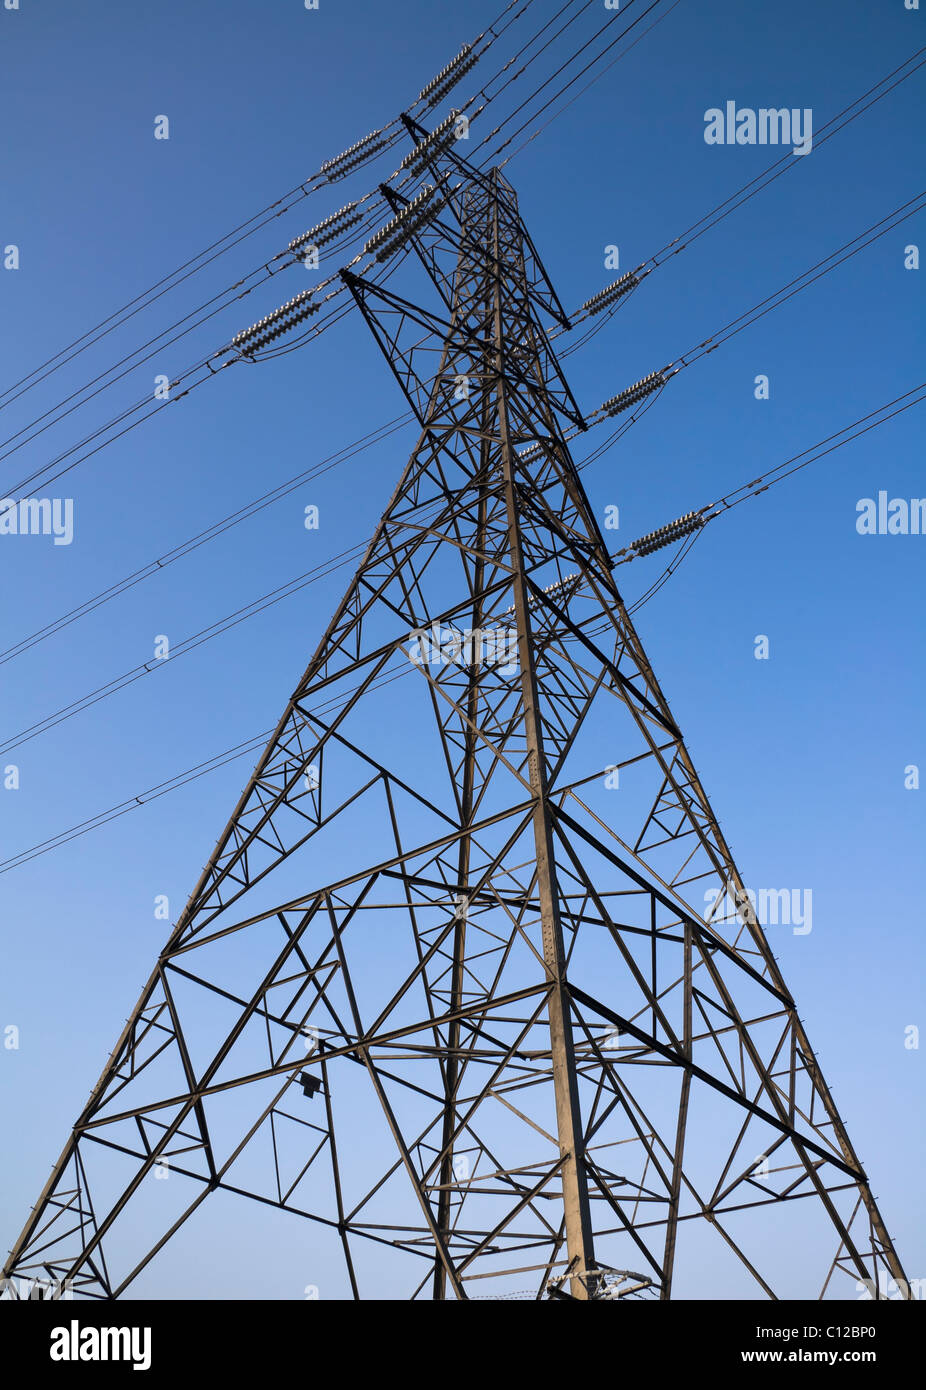 Electricity pylon or tower - Stock Image